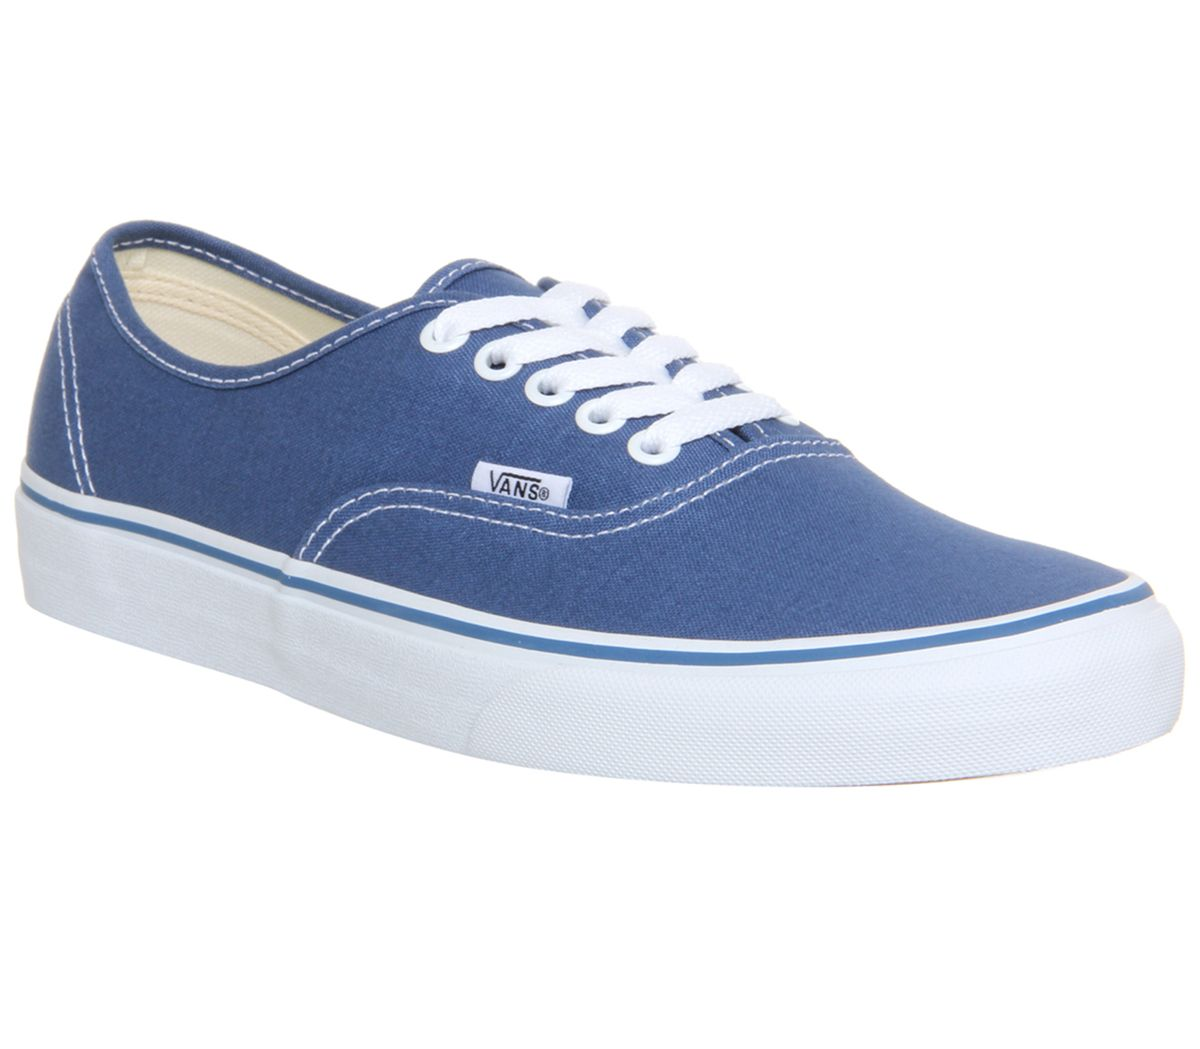 e69d0de98ddd Vans Authentic Navy - Unisex Sports